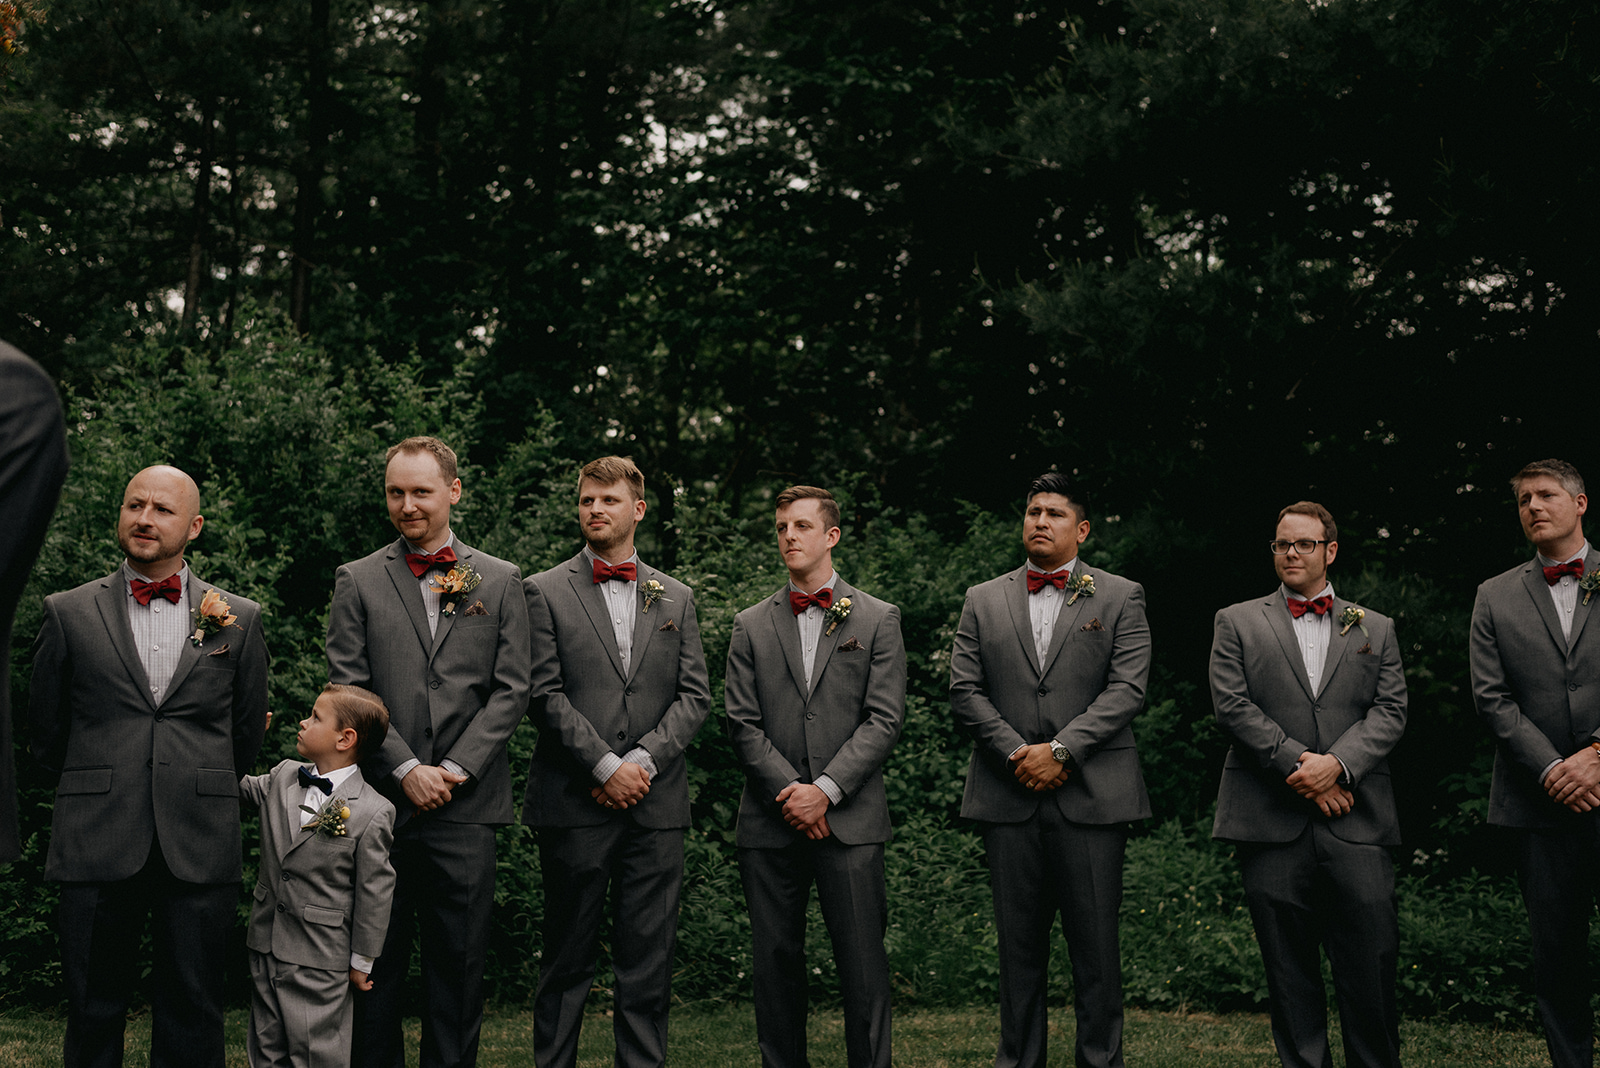 Groomsmen dress in grey suits with red bowties - Pearl Weddings & Events